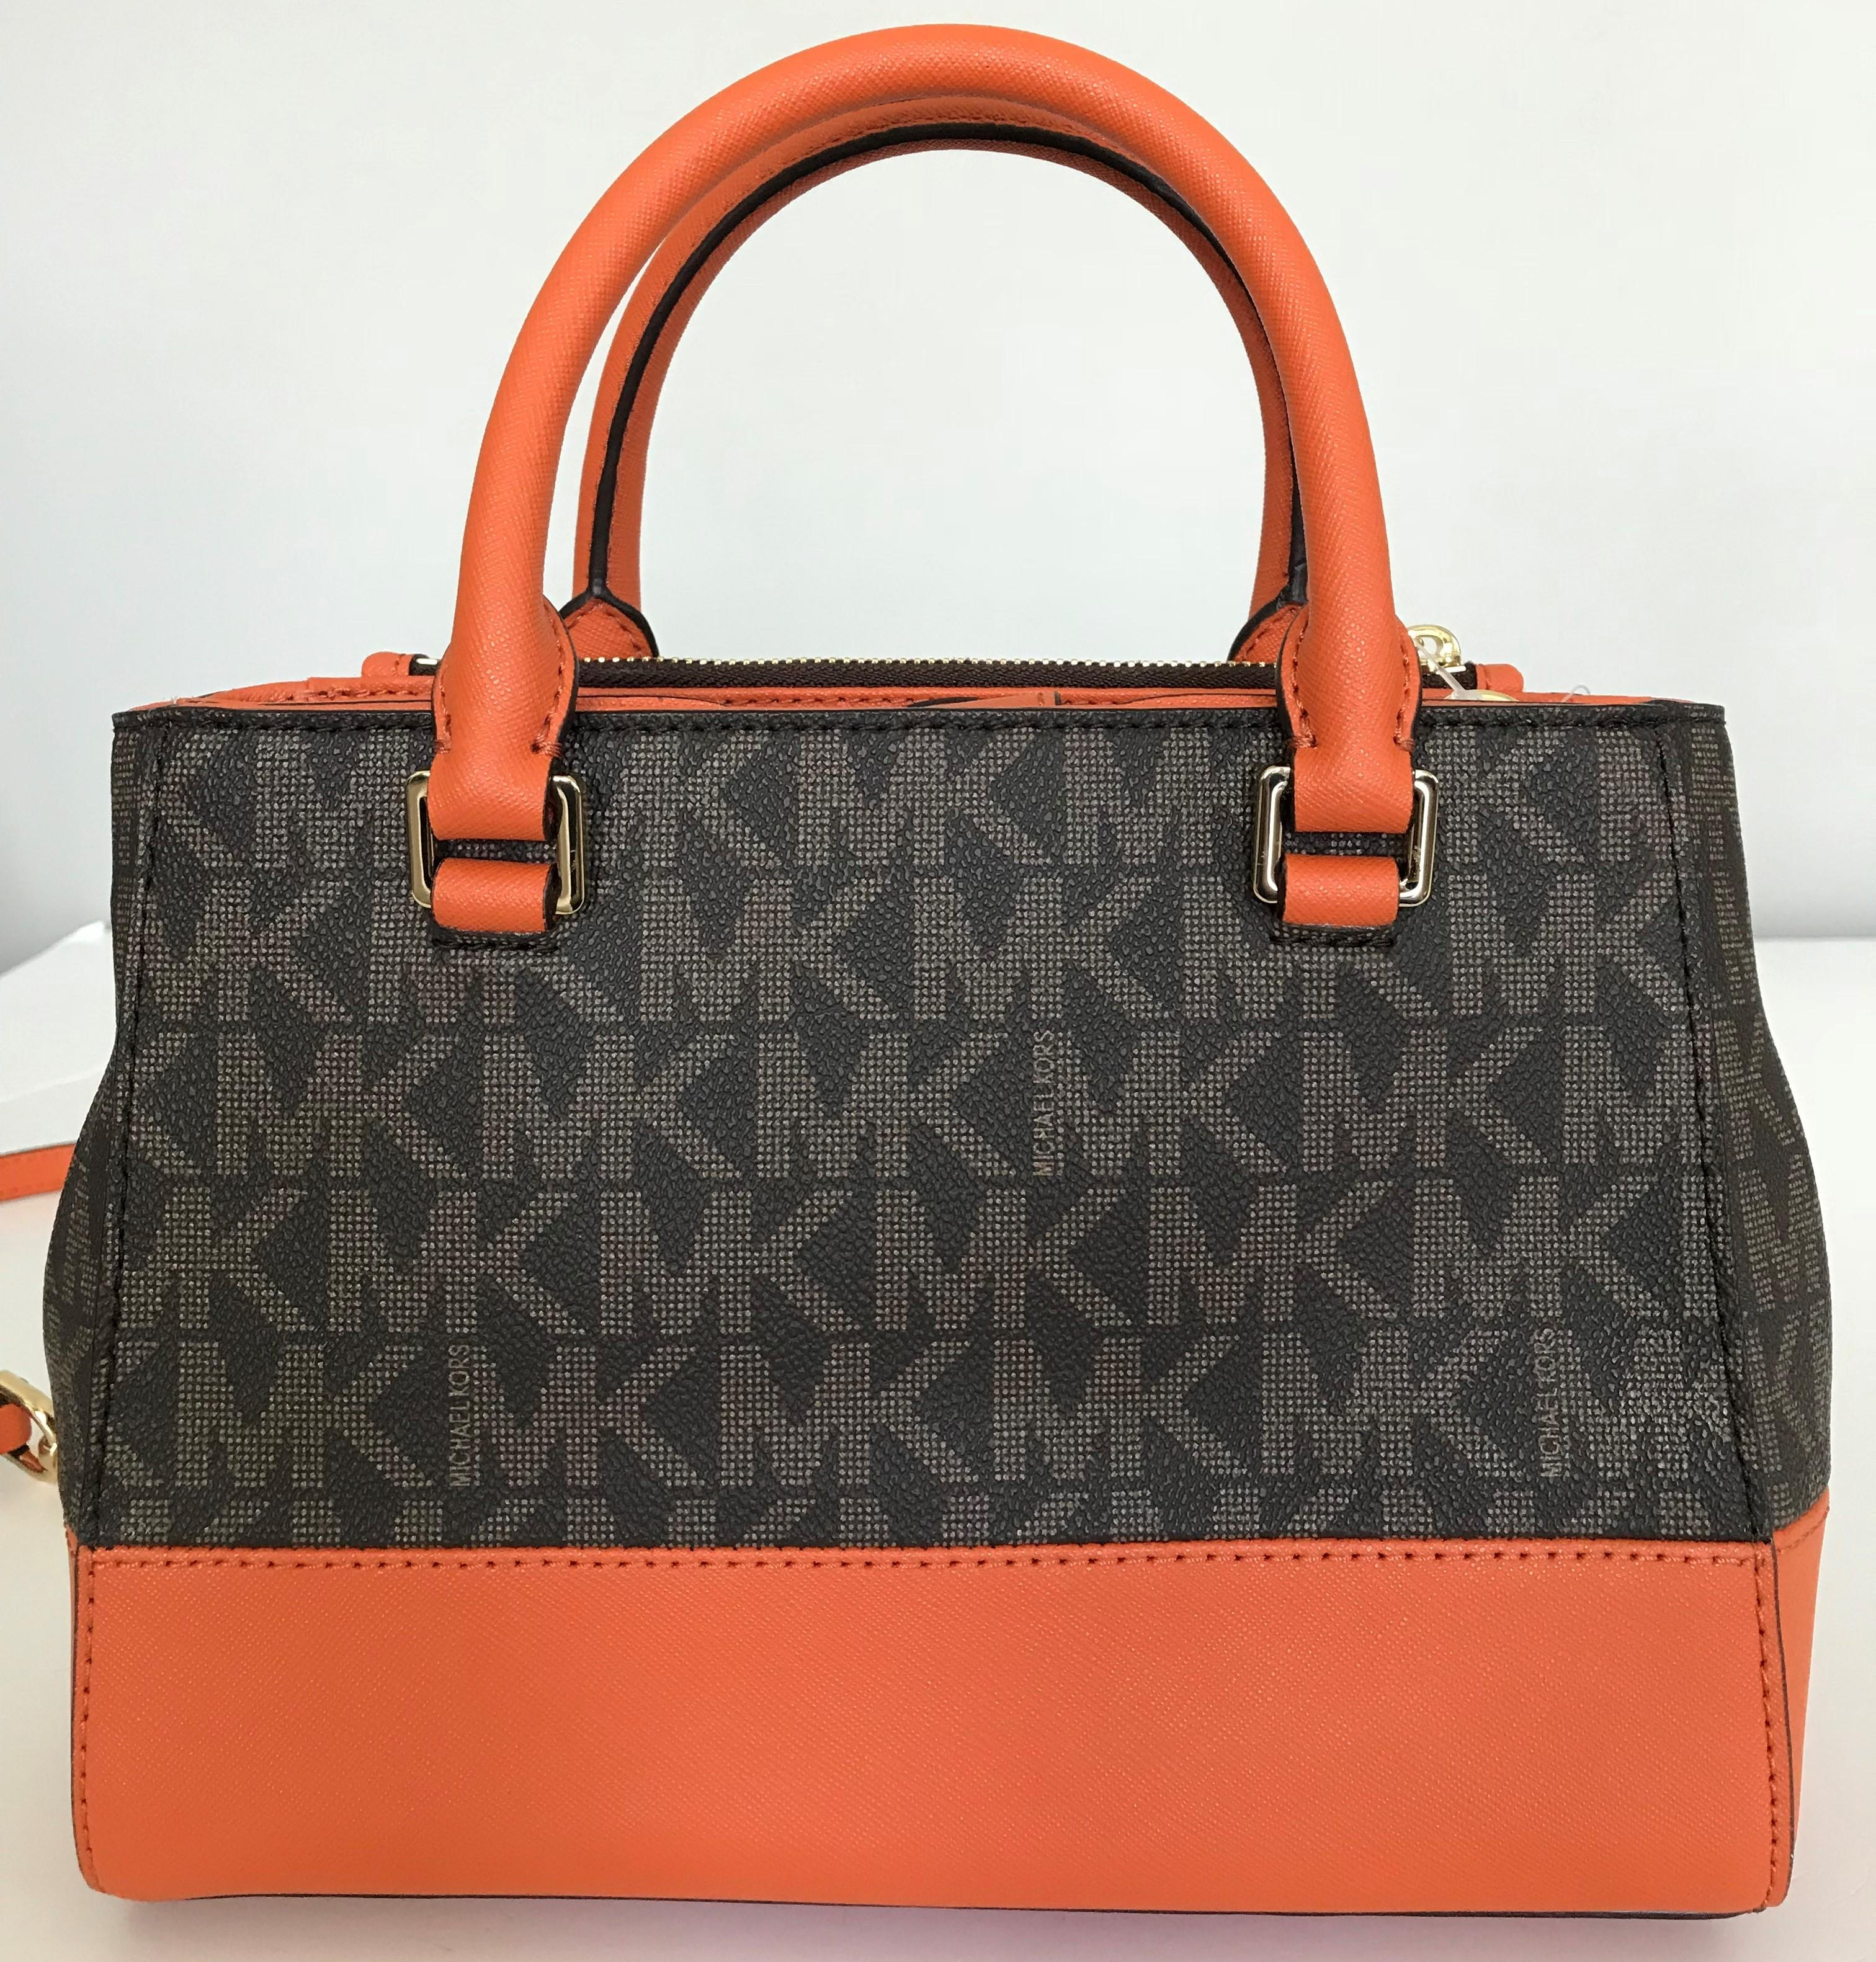 ff60f0a93e24 ... outlet 65cd0 4b8ad; norway michael kors satchel in tangerine orange  brown. 123456789 c7b8c 704d5